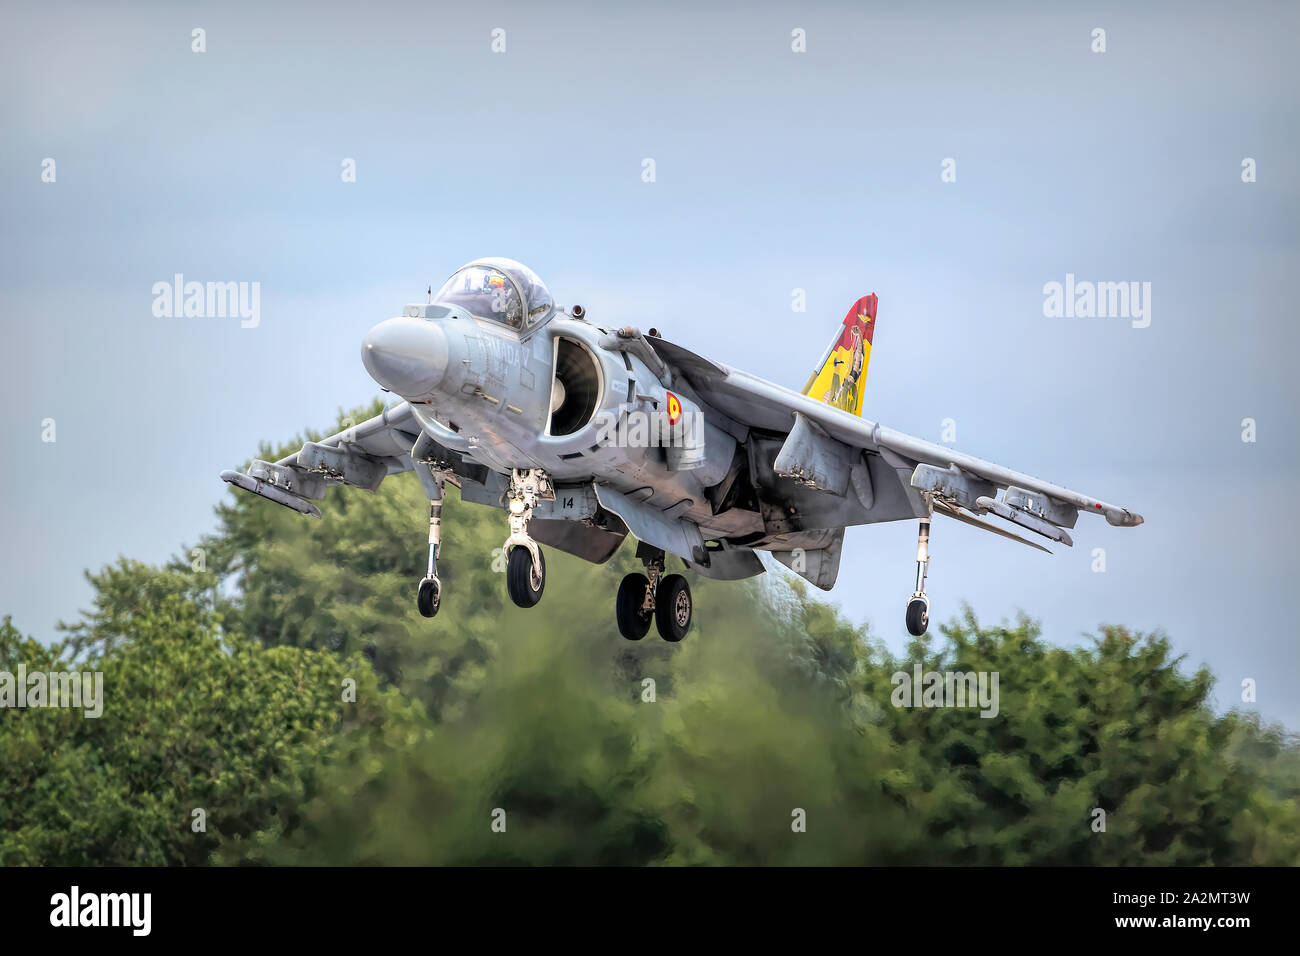 Armada Espanola Harrier AV-8B II Stock Photo